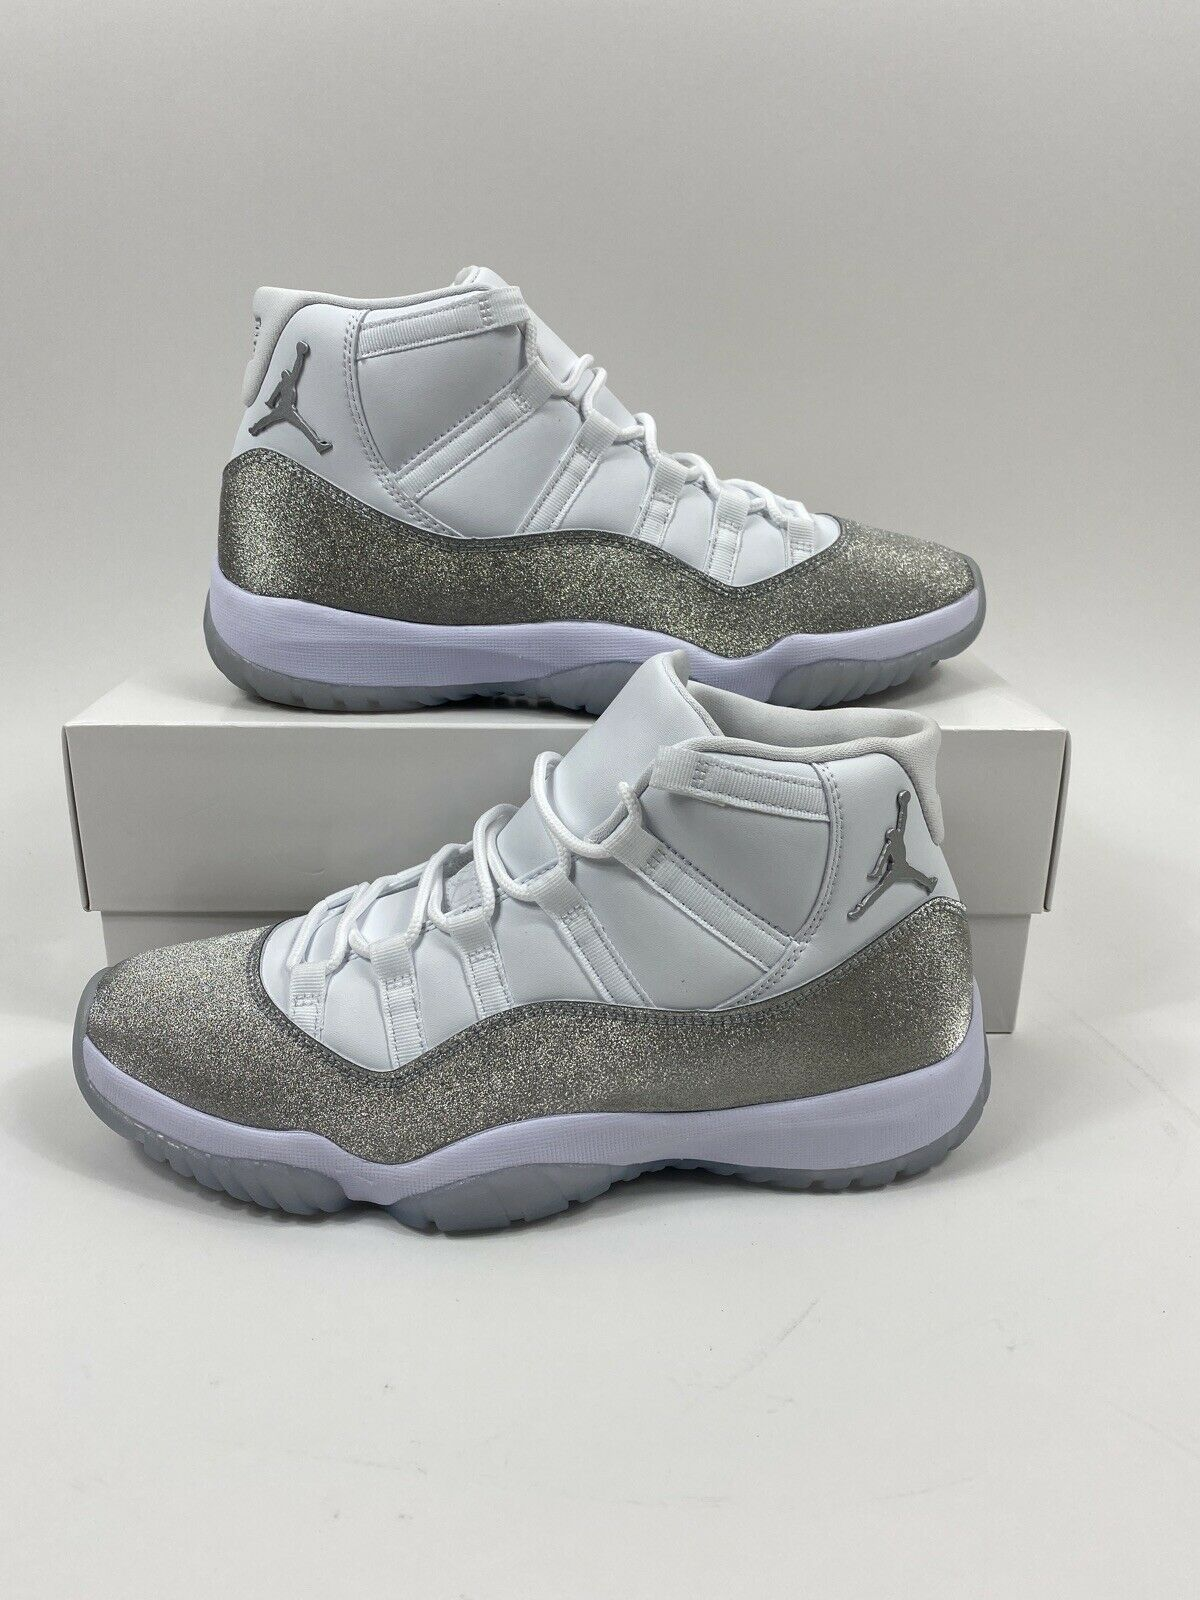 Jordan 11 Retro White Metallic Silver W